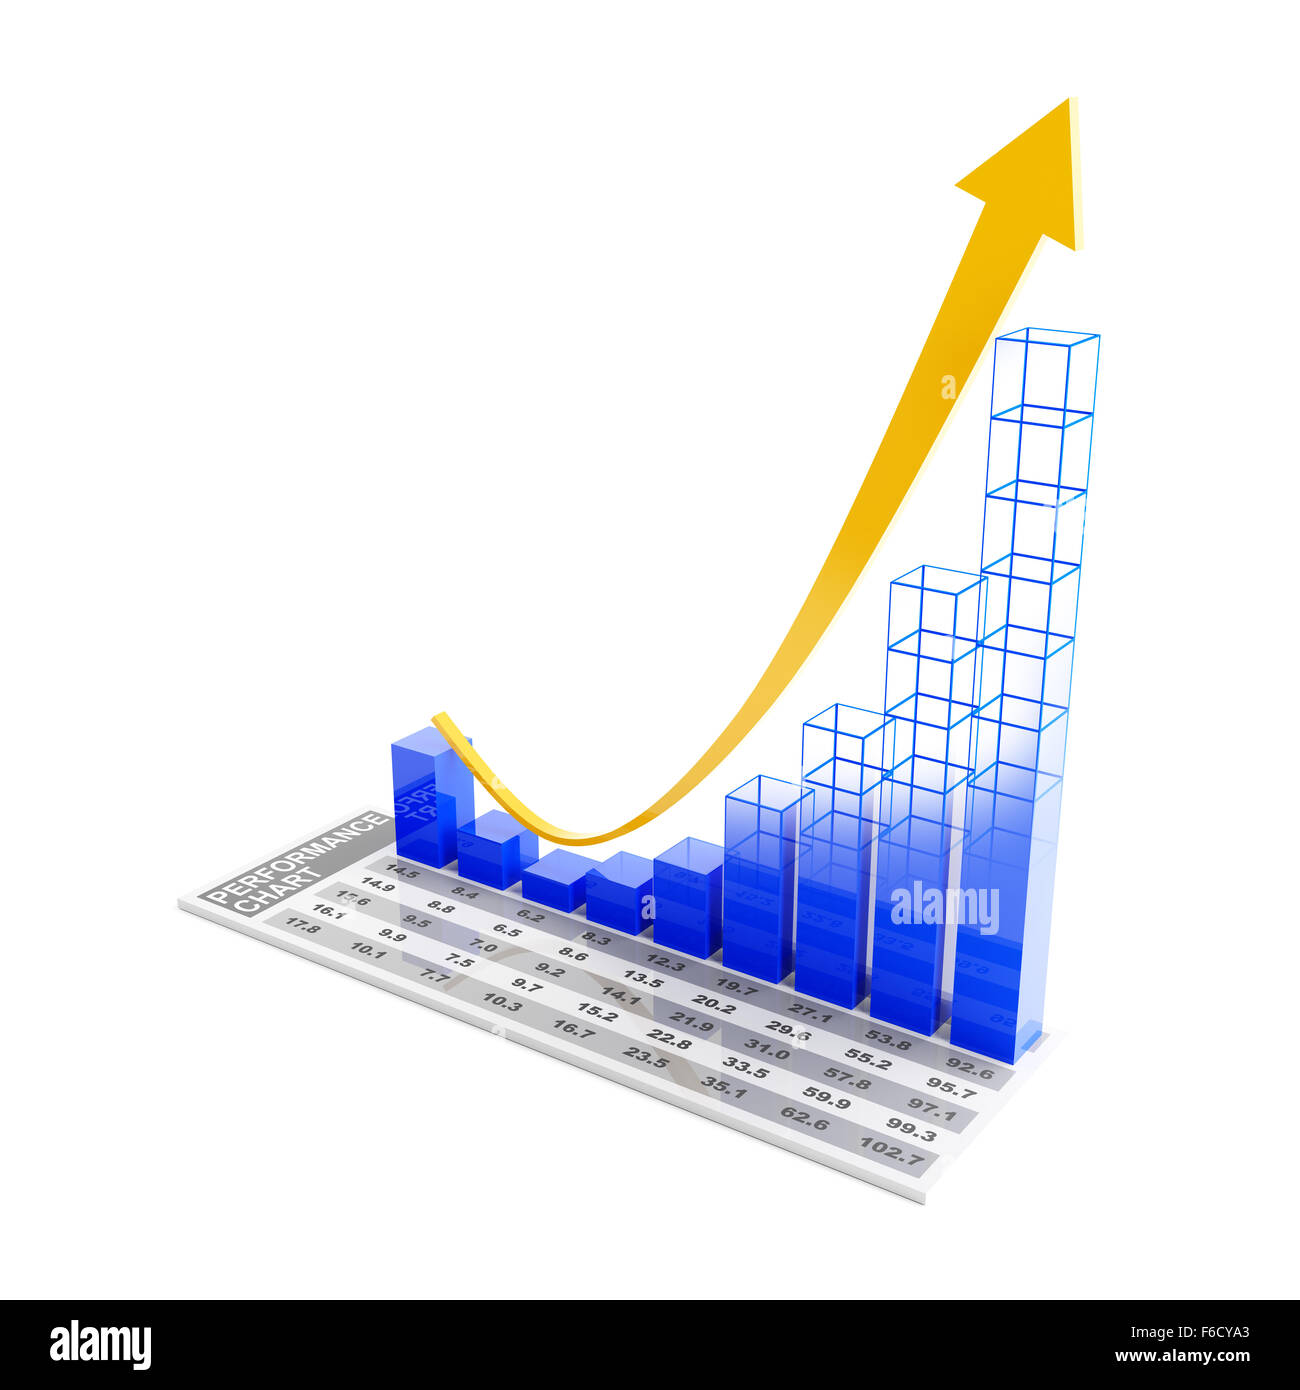 Performance chart showing future rebound trend - Stock Image